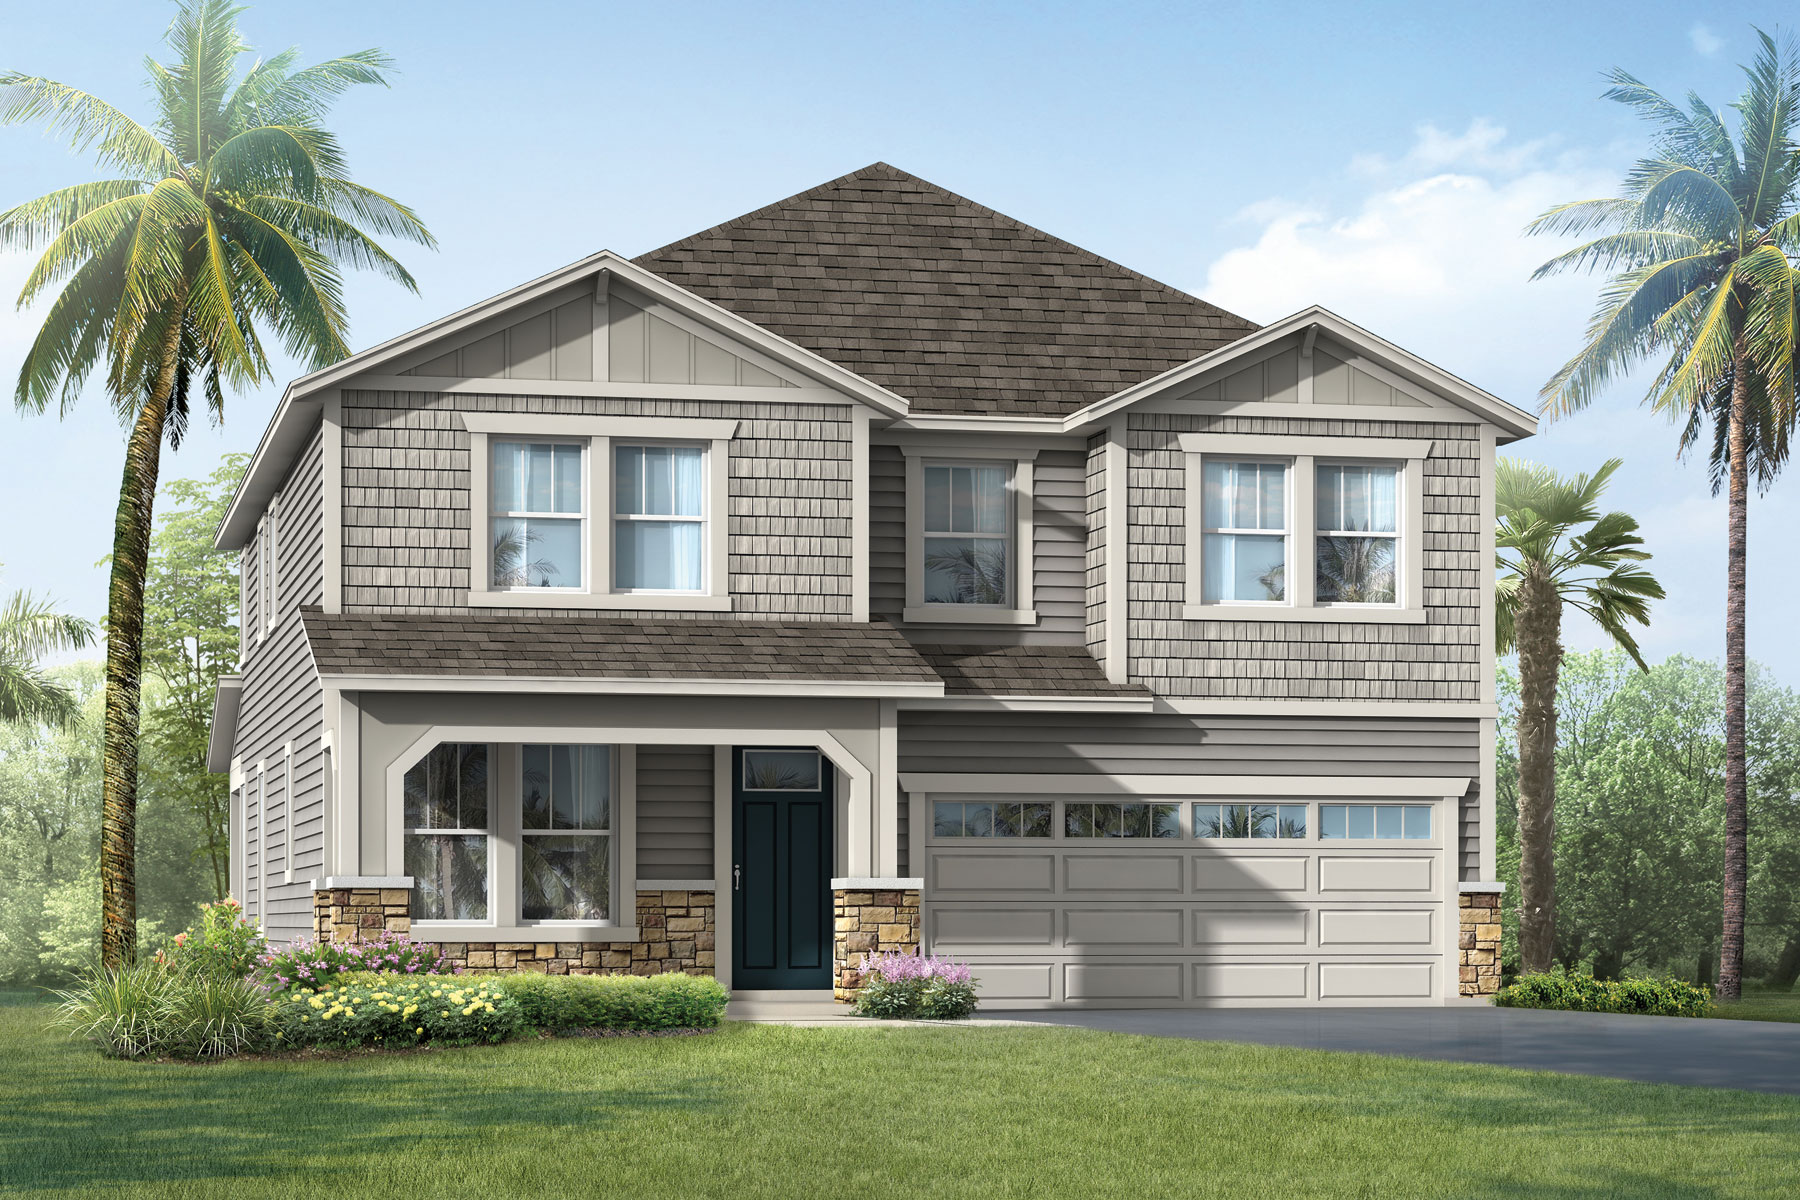 Vireo Plan ElevationCraftsman_RiverTown_Vireo at RiverTown - Arbors in St. Johns Florida by Mattamy Homes